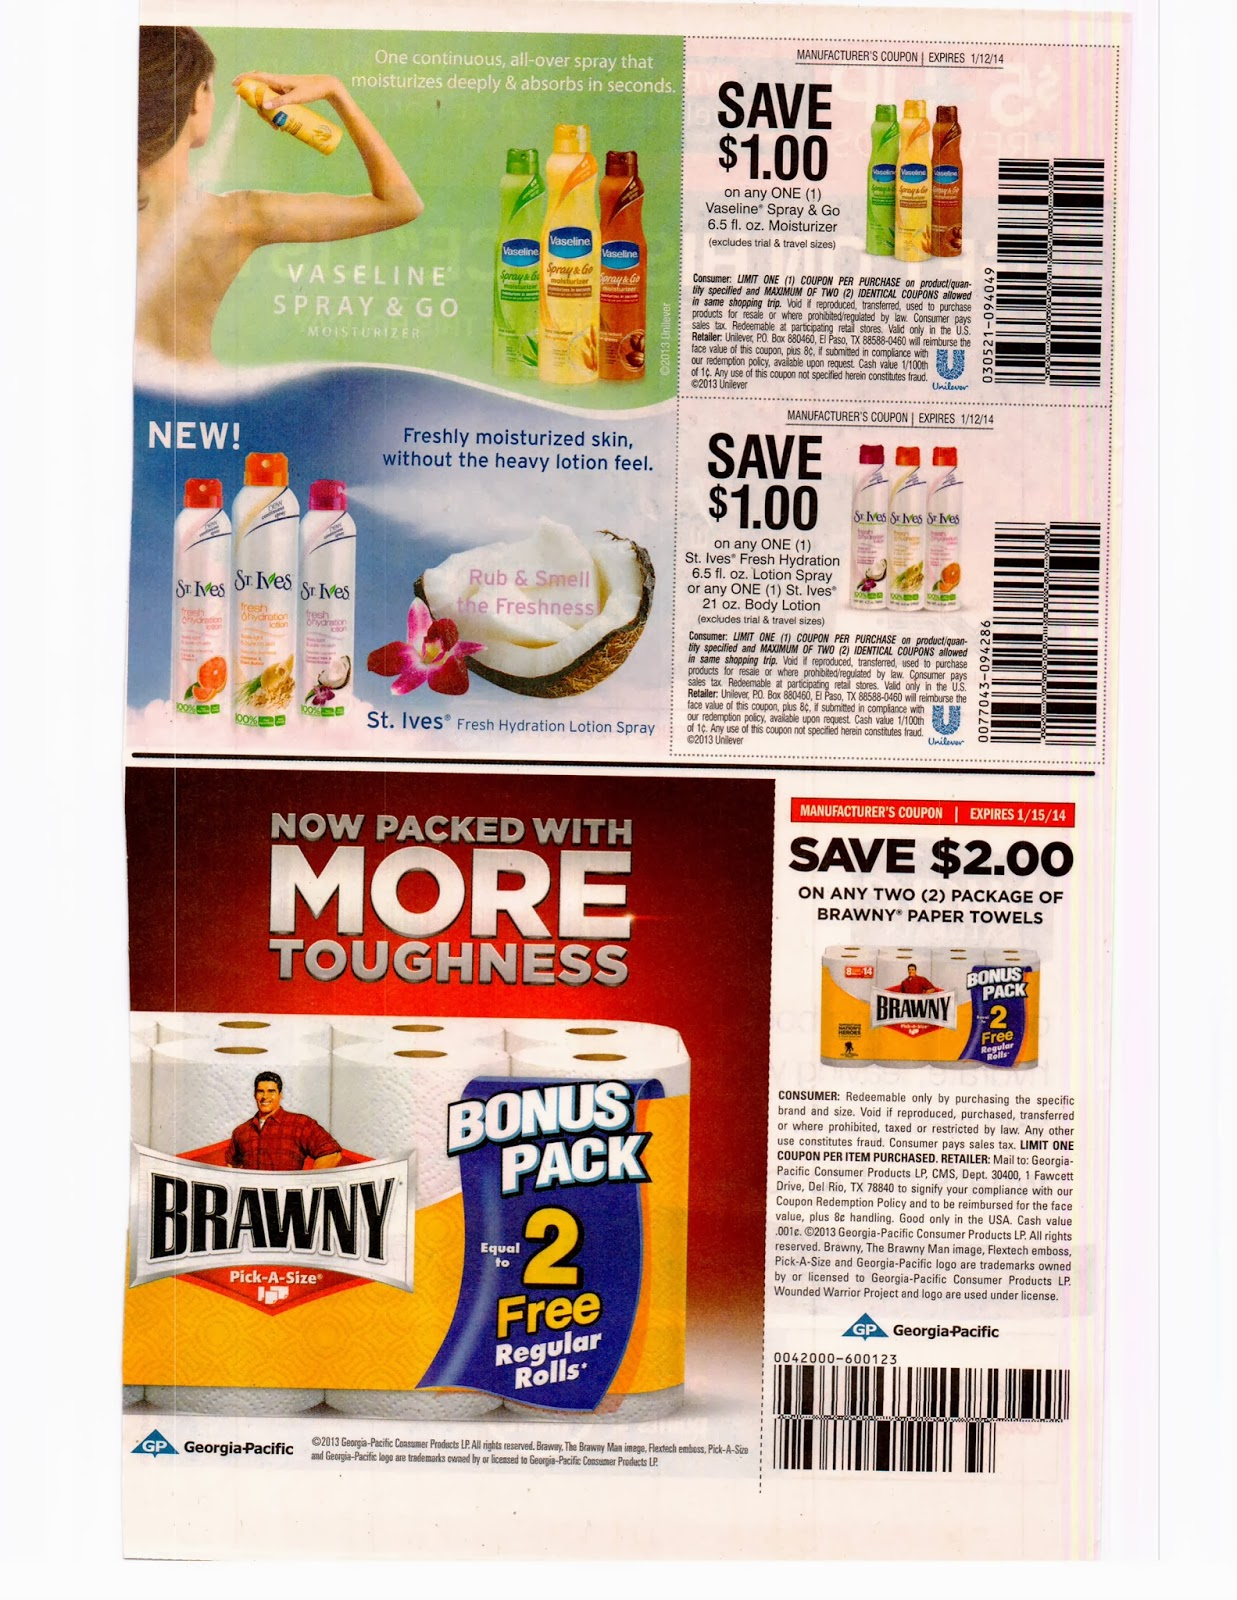 Extreme Couponing is an extreme sport that combines savvy shopping skills with couponing in an attempt to save as much money as possible while accumulating the most groceries.